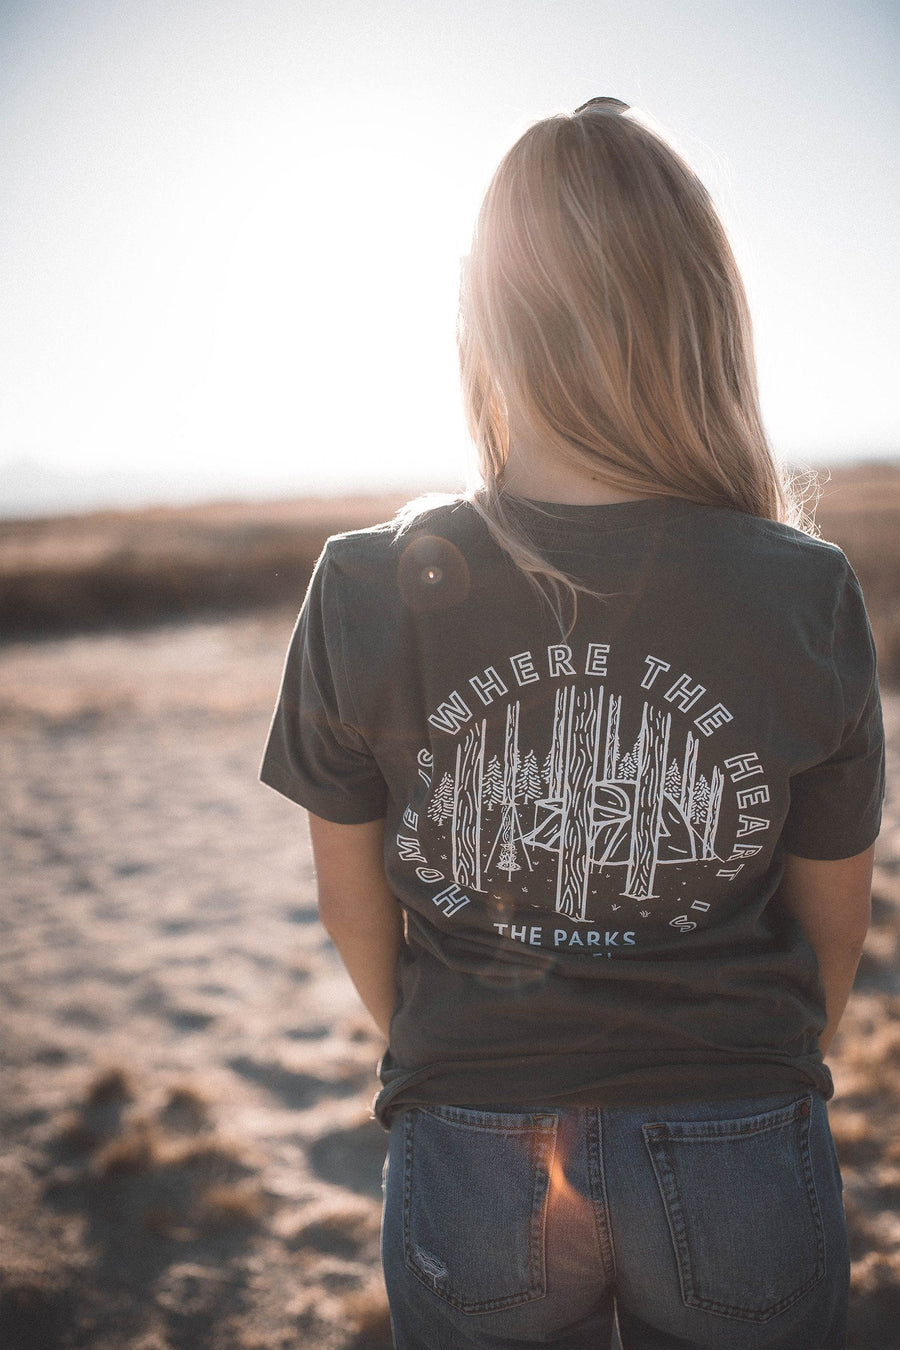 Home Is Where The Heart Is Tee - Wondery, A Parks Apparel Brand